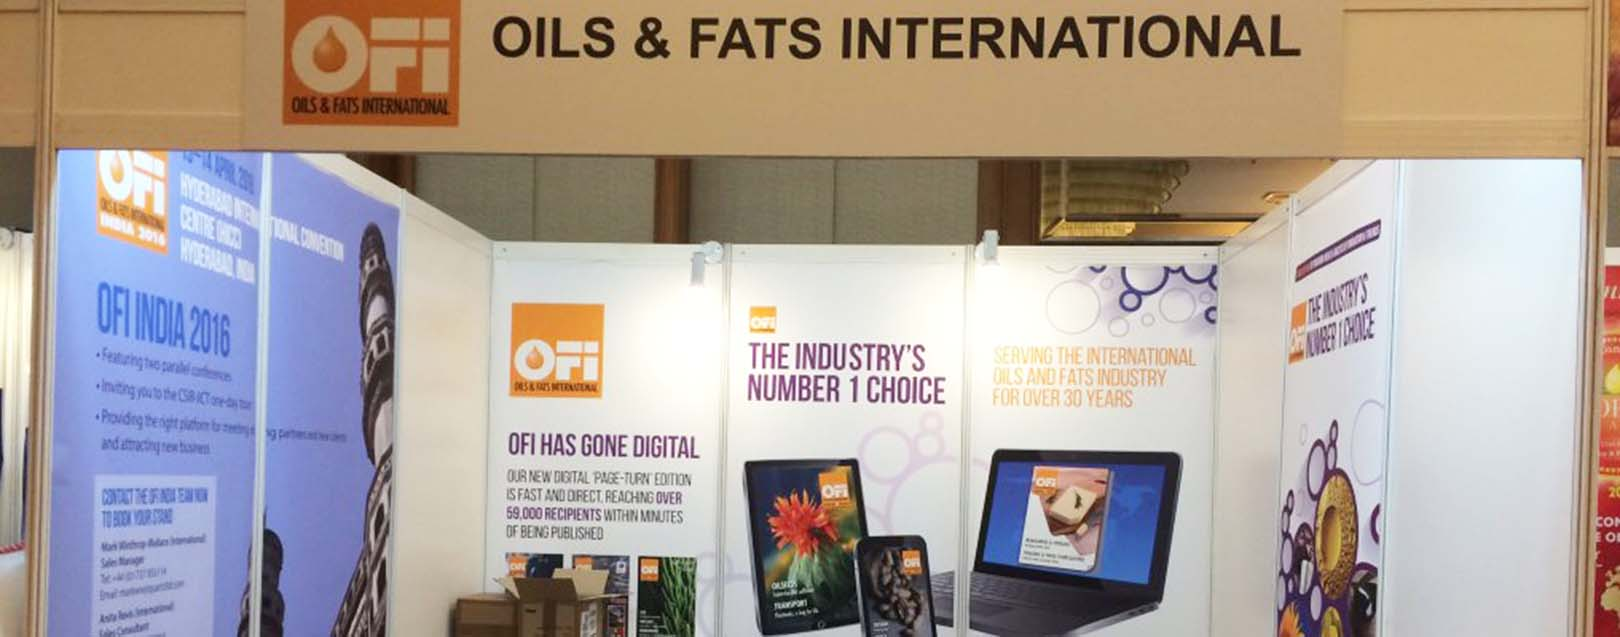 Global oils & fats event held first time in India